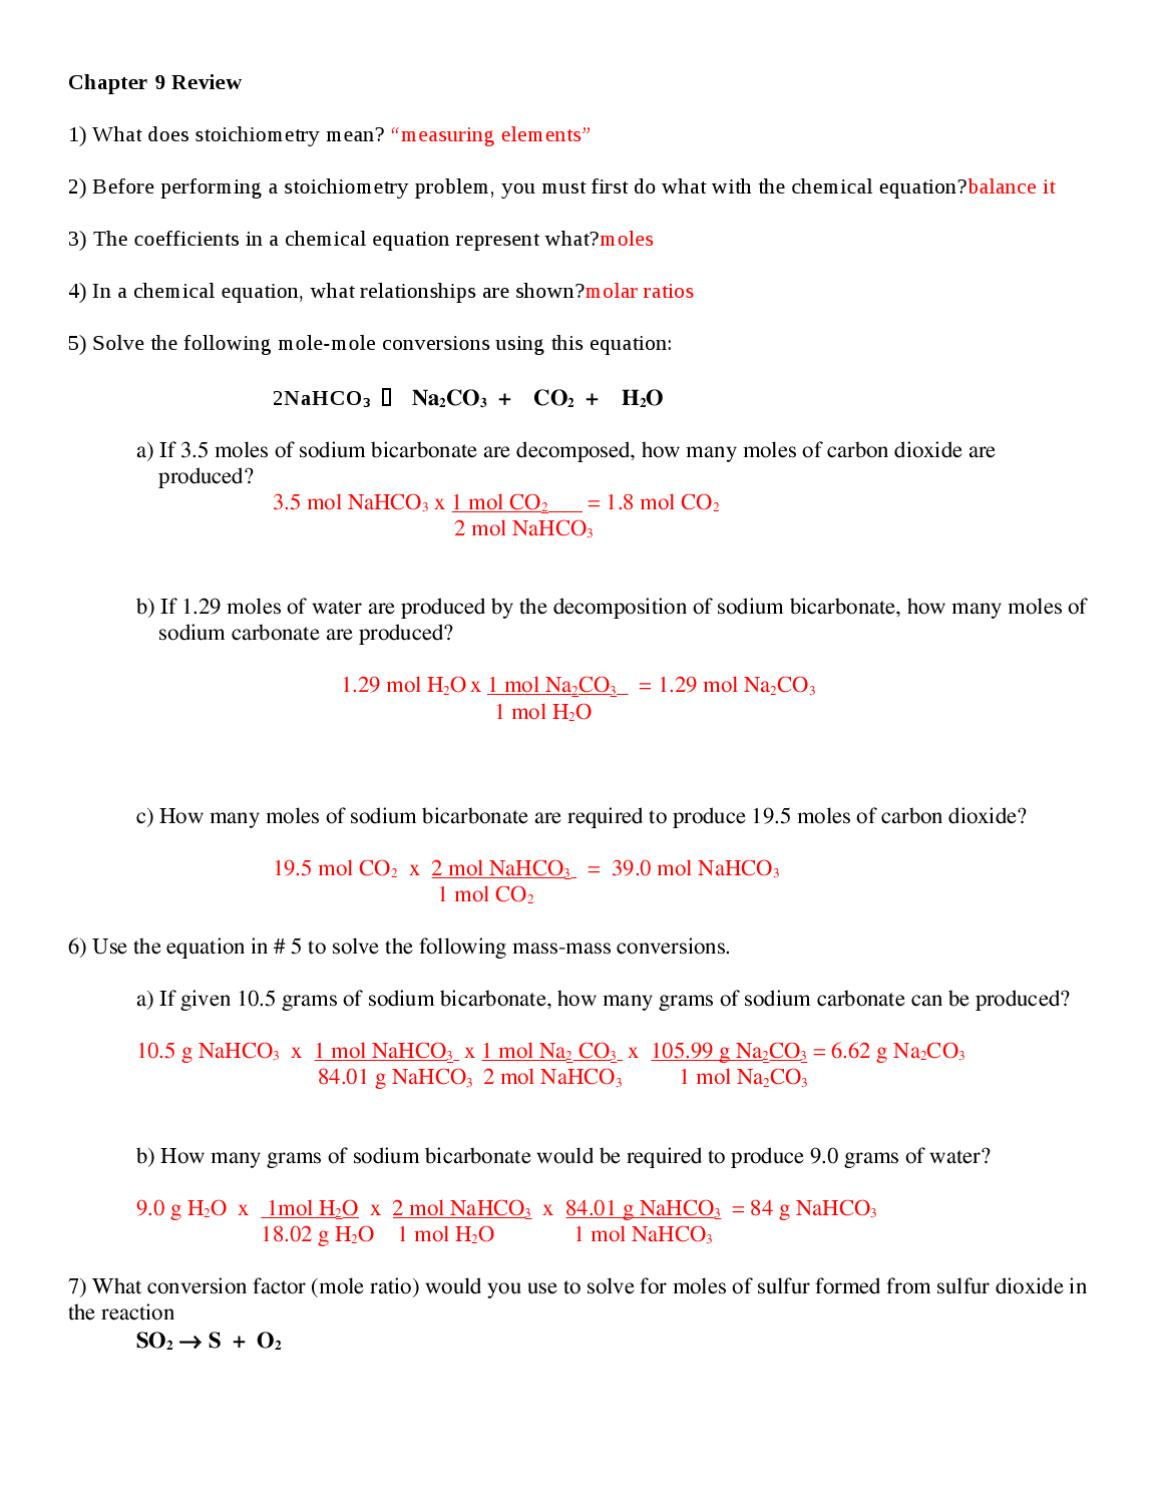 Chapter 11 Test  Review Answer K By Hc Communications